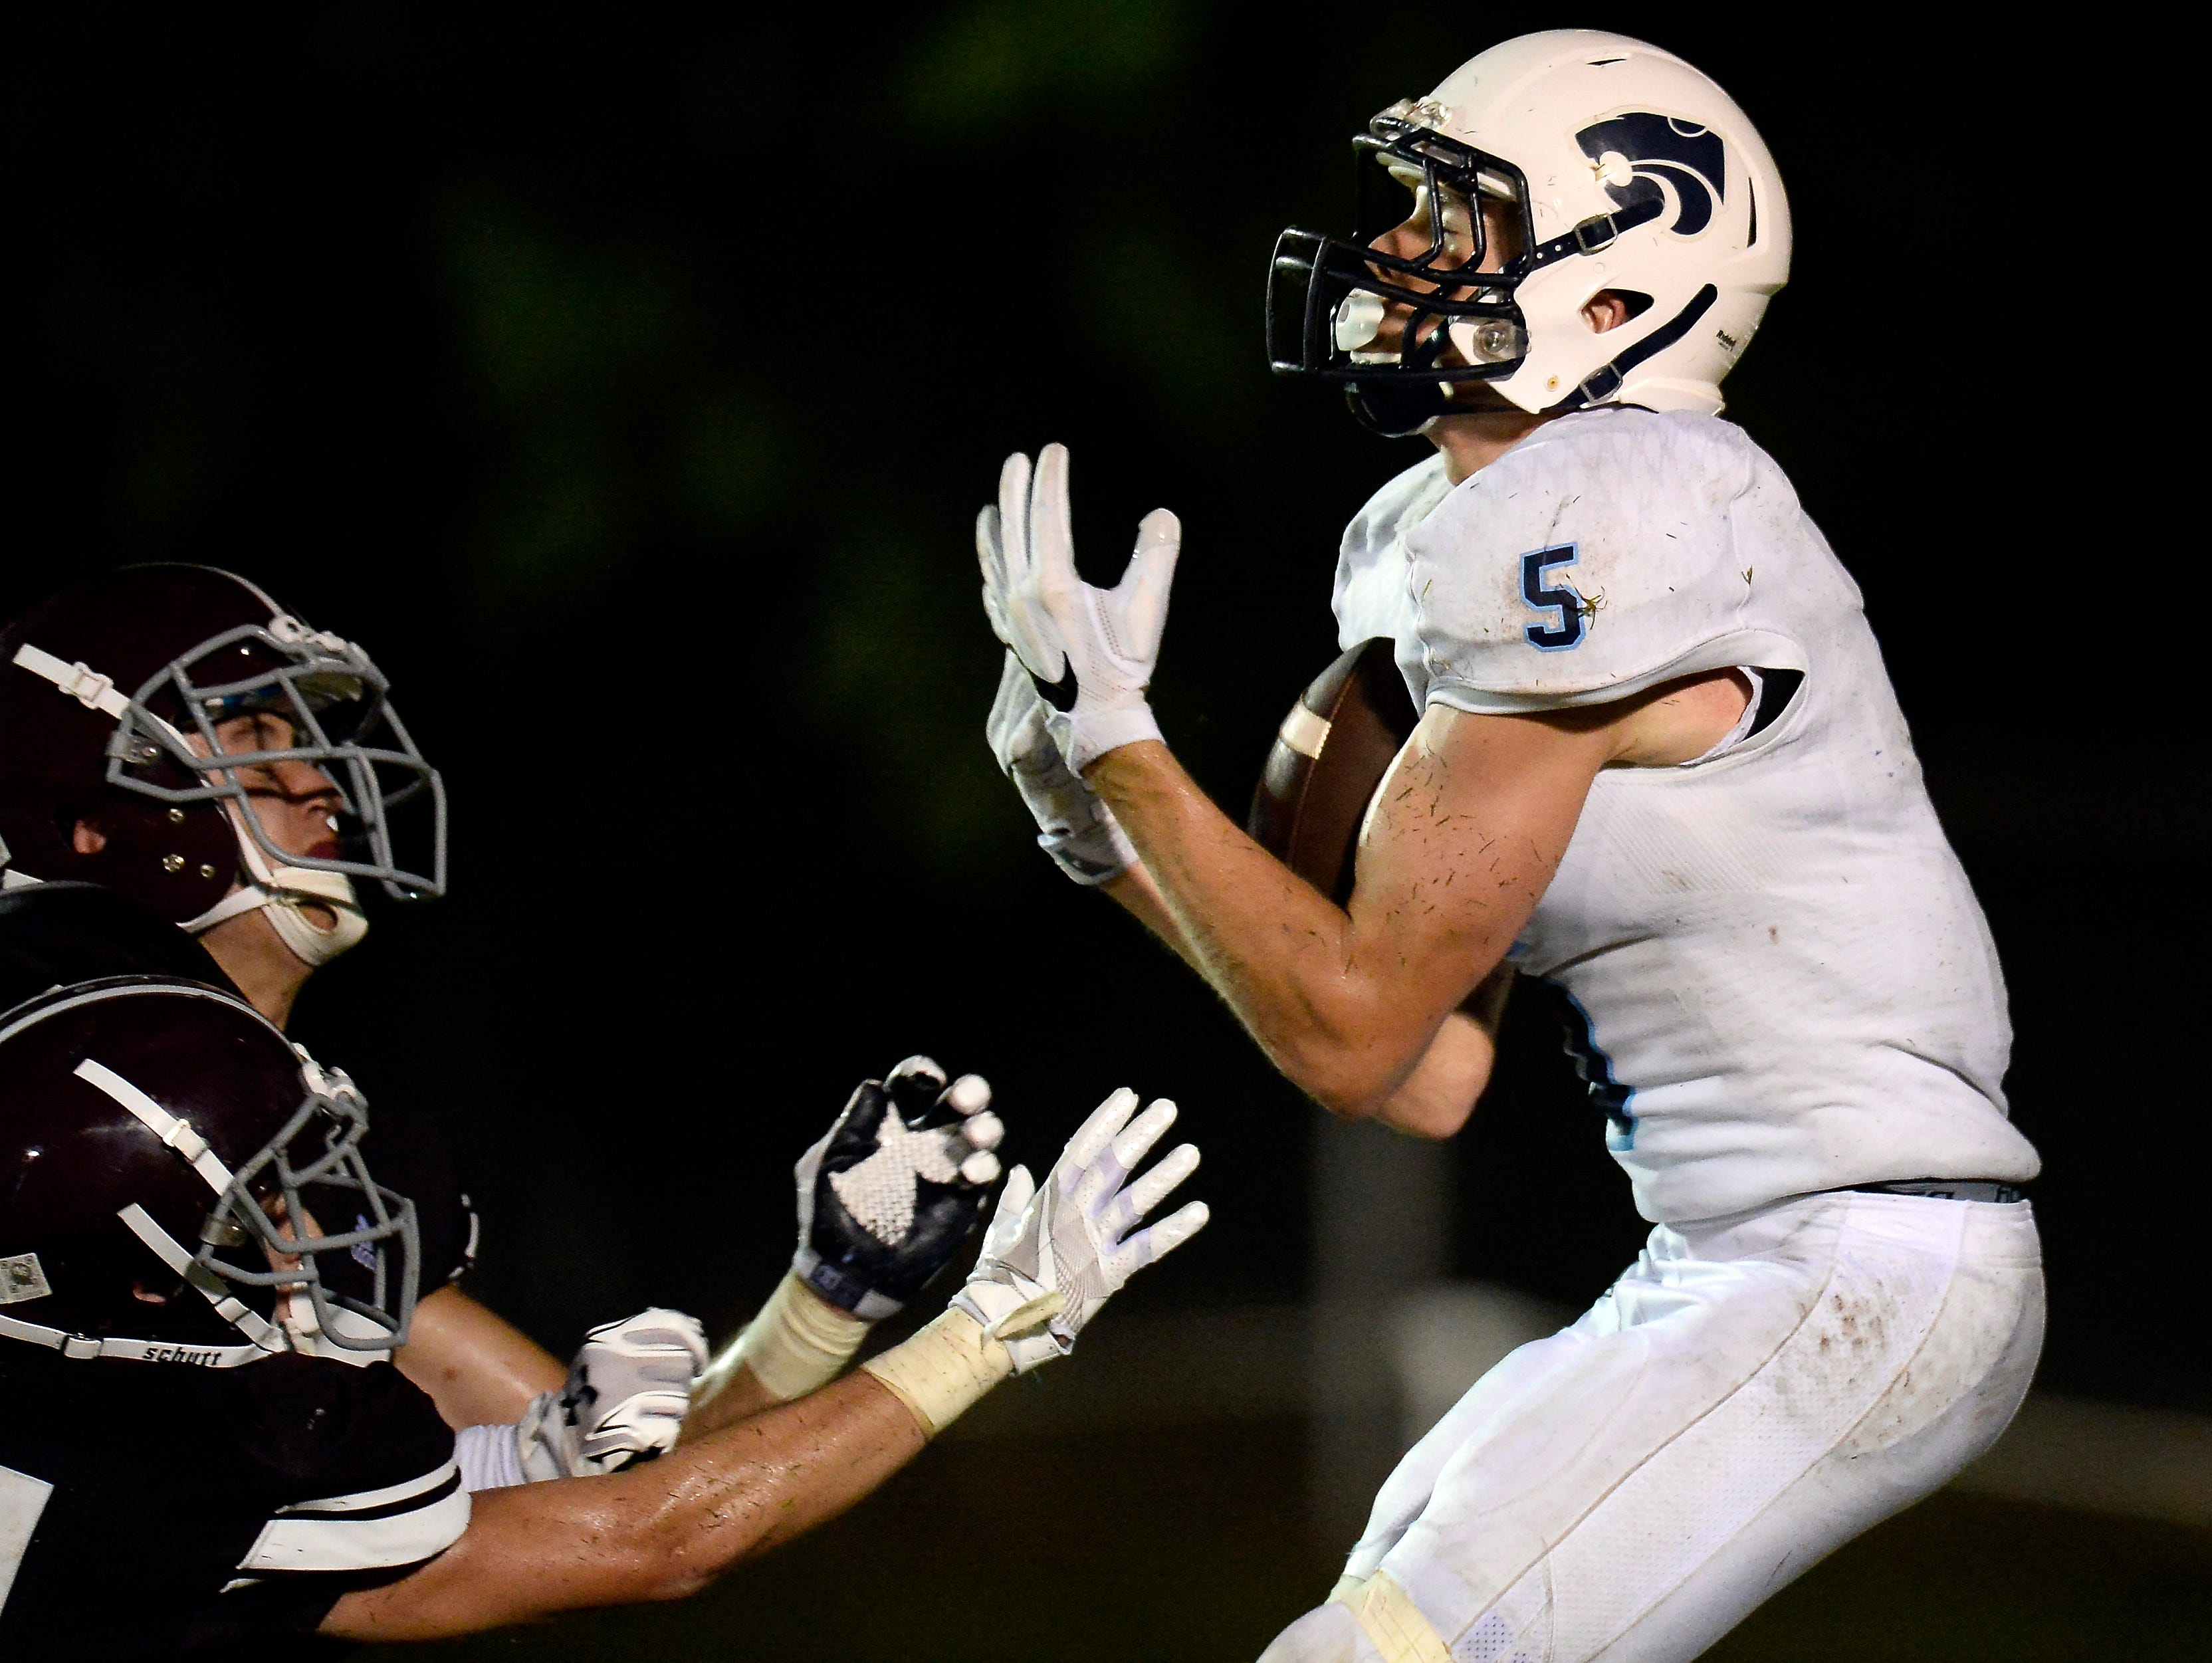 Centennial wide receiver Austin Waddell (5) catches a pass in the end zone for the game-winning touchdown against Franklin with 18 seconds left in the fourth quarter on Friday, August 19, 2016, in Franklin.